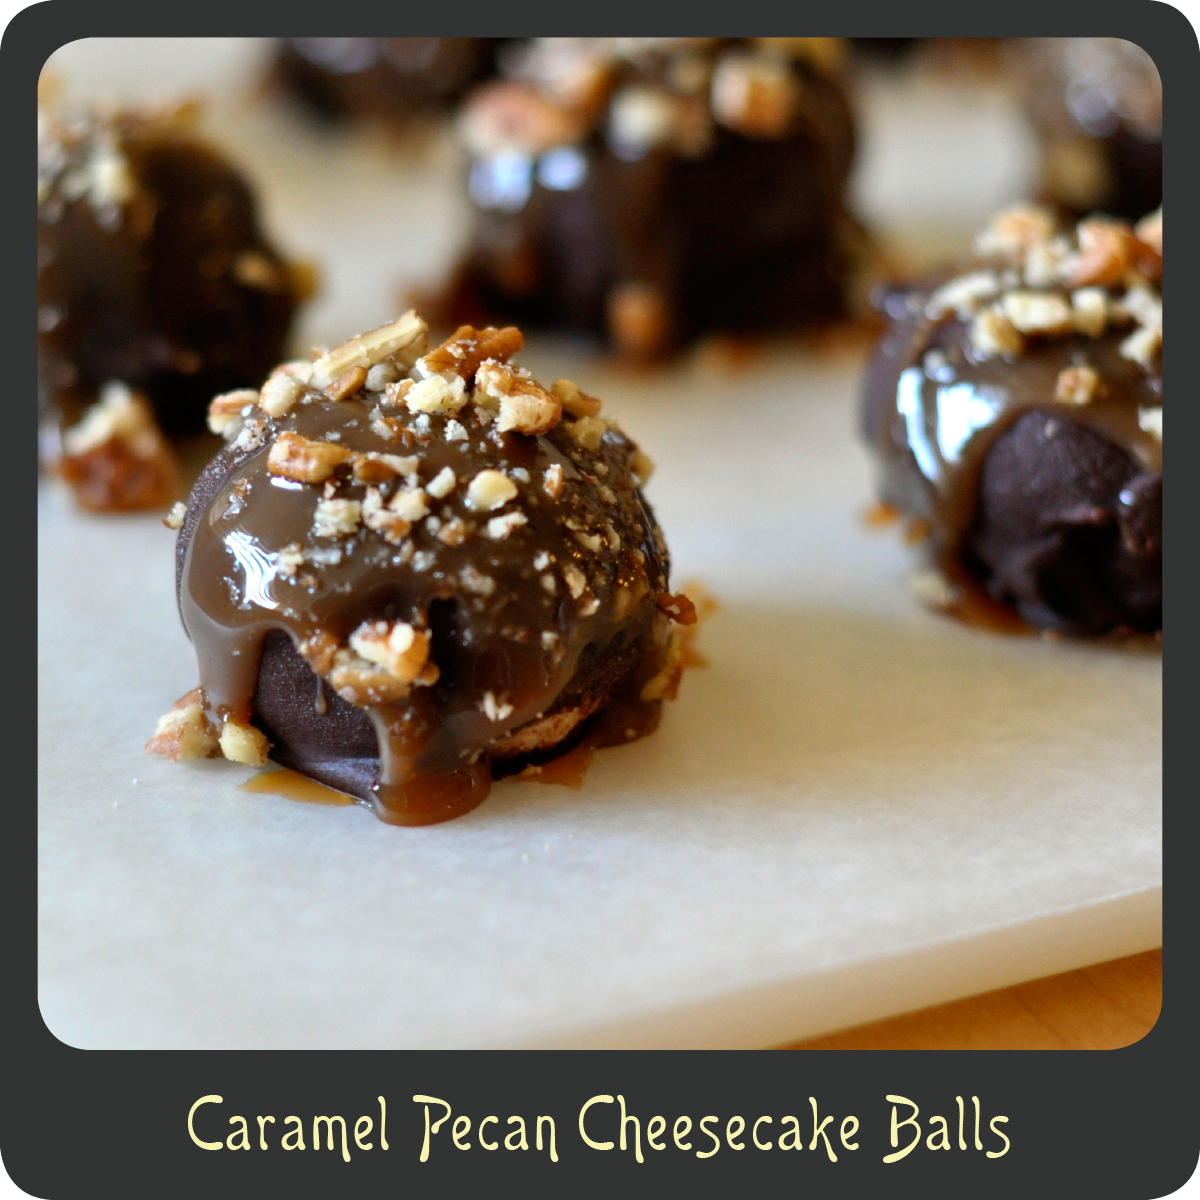 Recipe—Caramel Pecan Cheesecake Balls